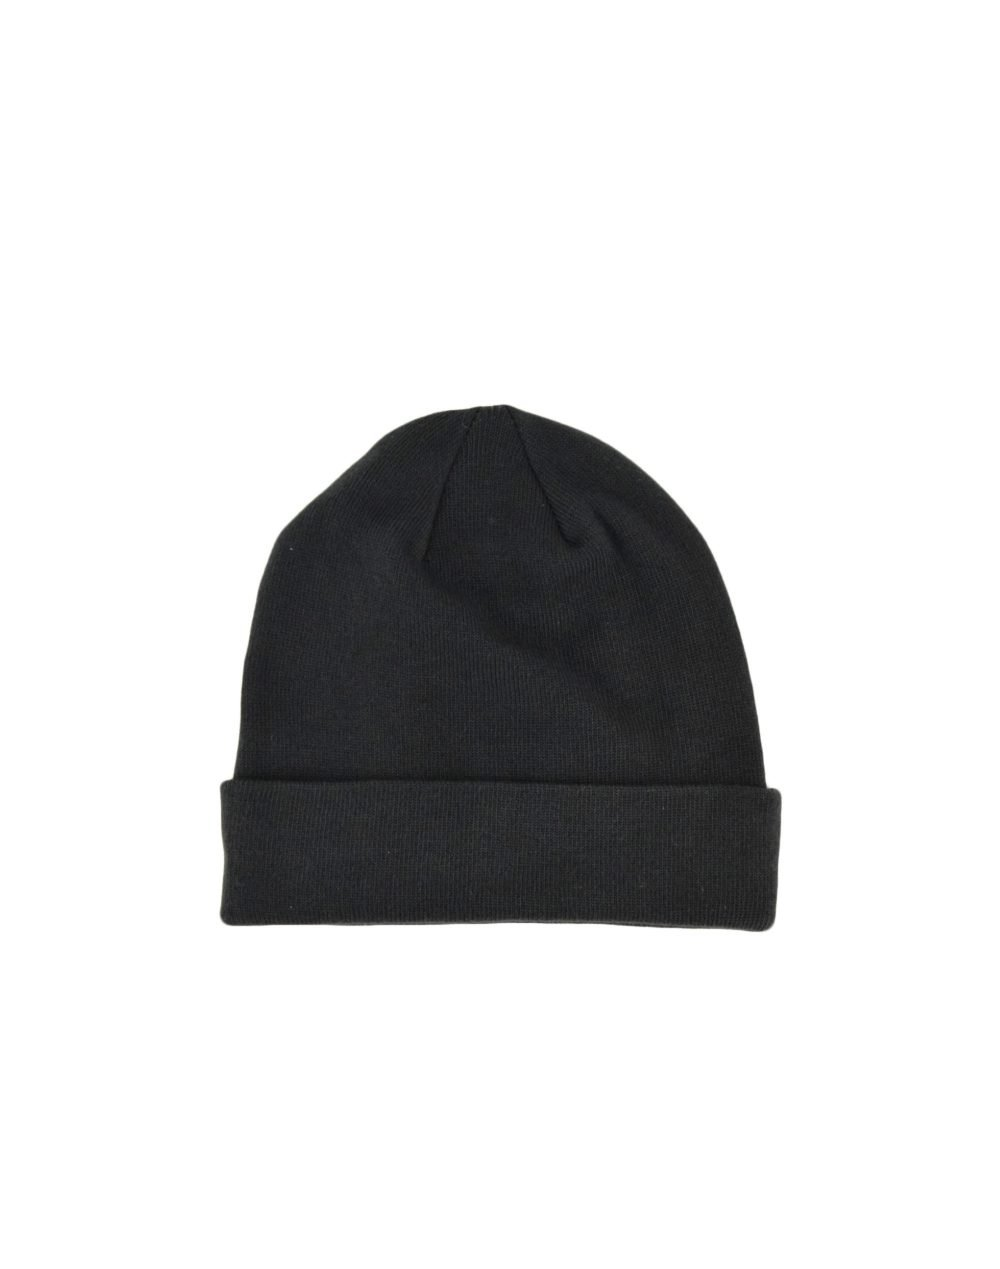 The North Face Dock Worker Recycled Beanie (NF0A3FNTJK31) Black